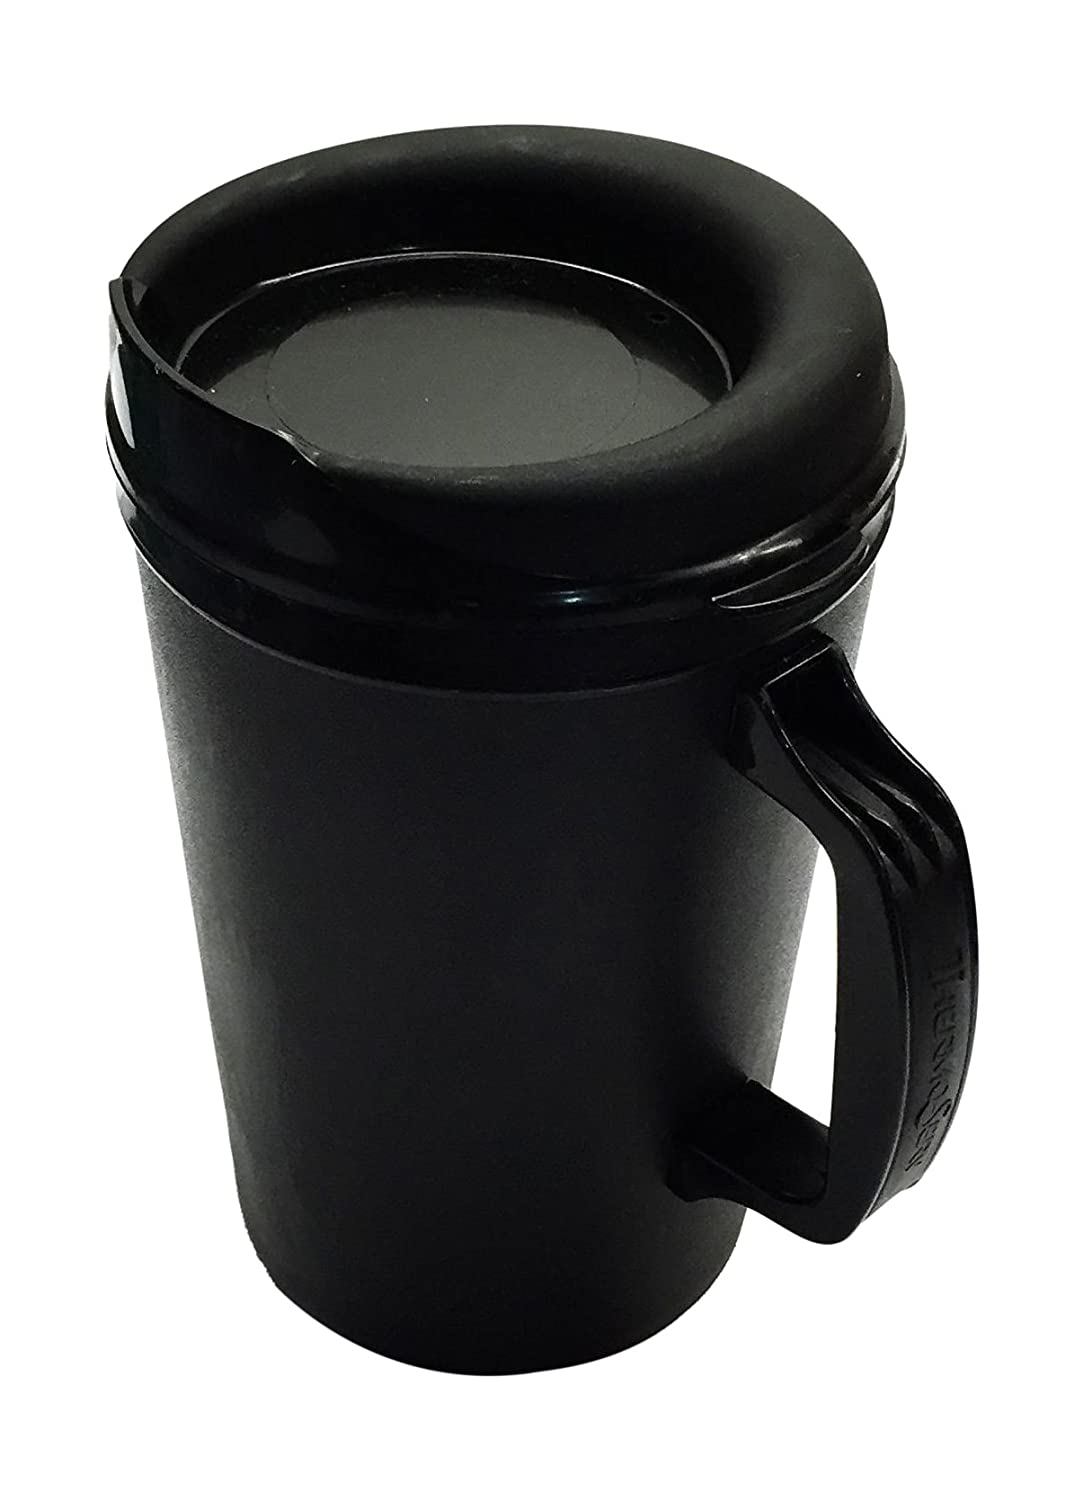 34 Oz ThermoServ Foam Insulated Coffee Mugs